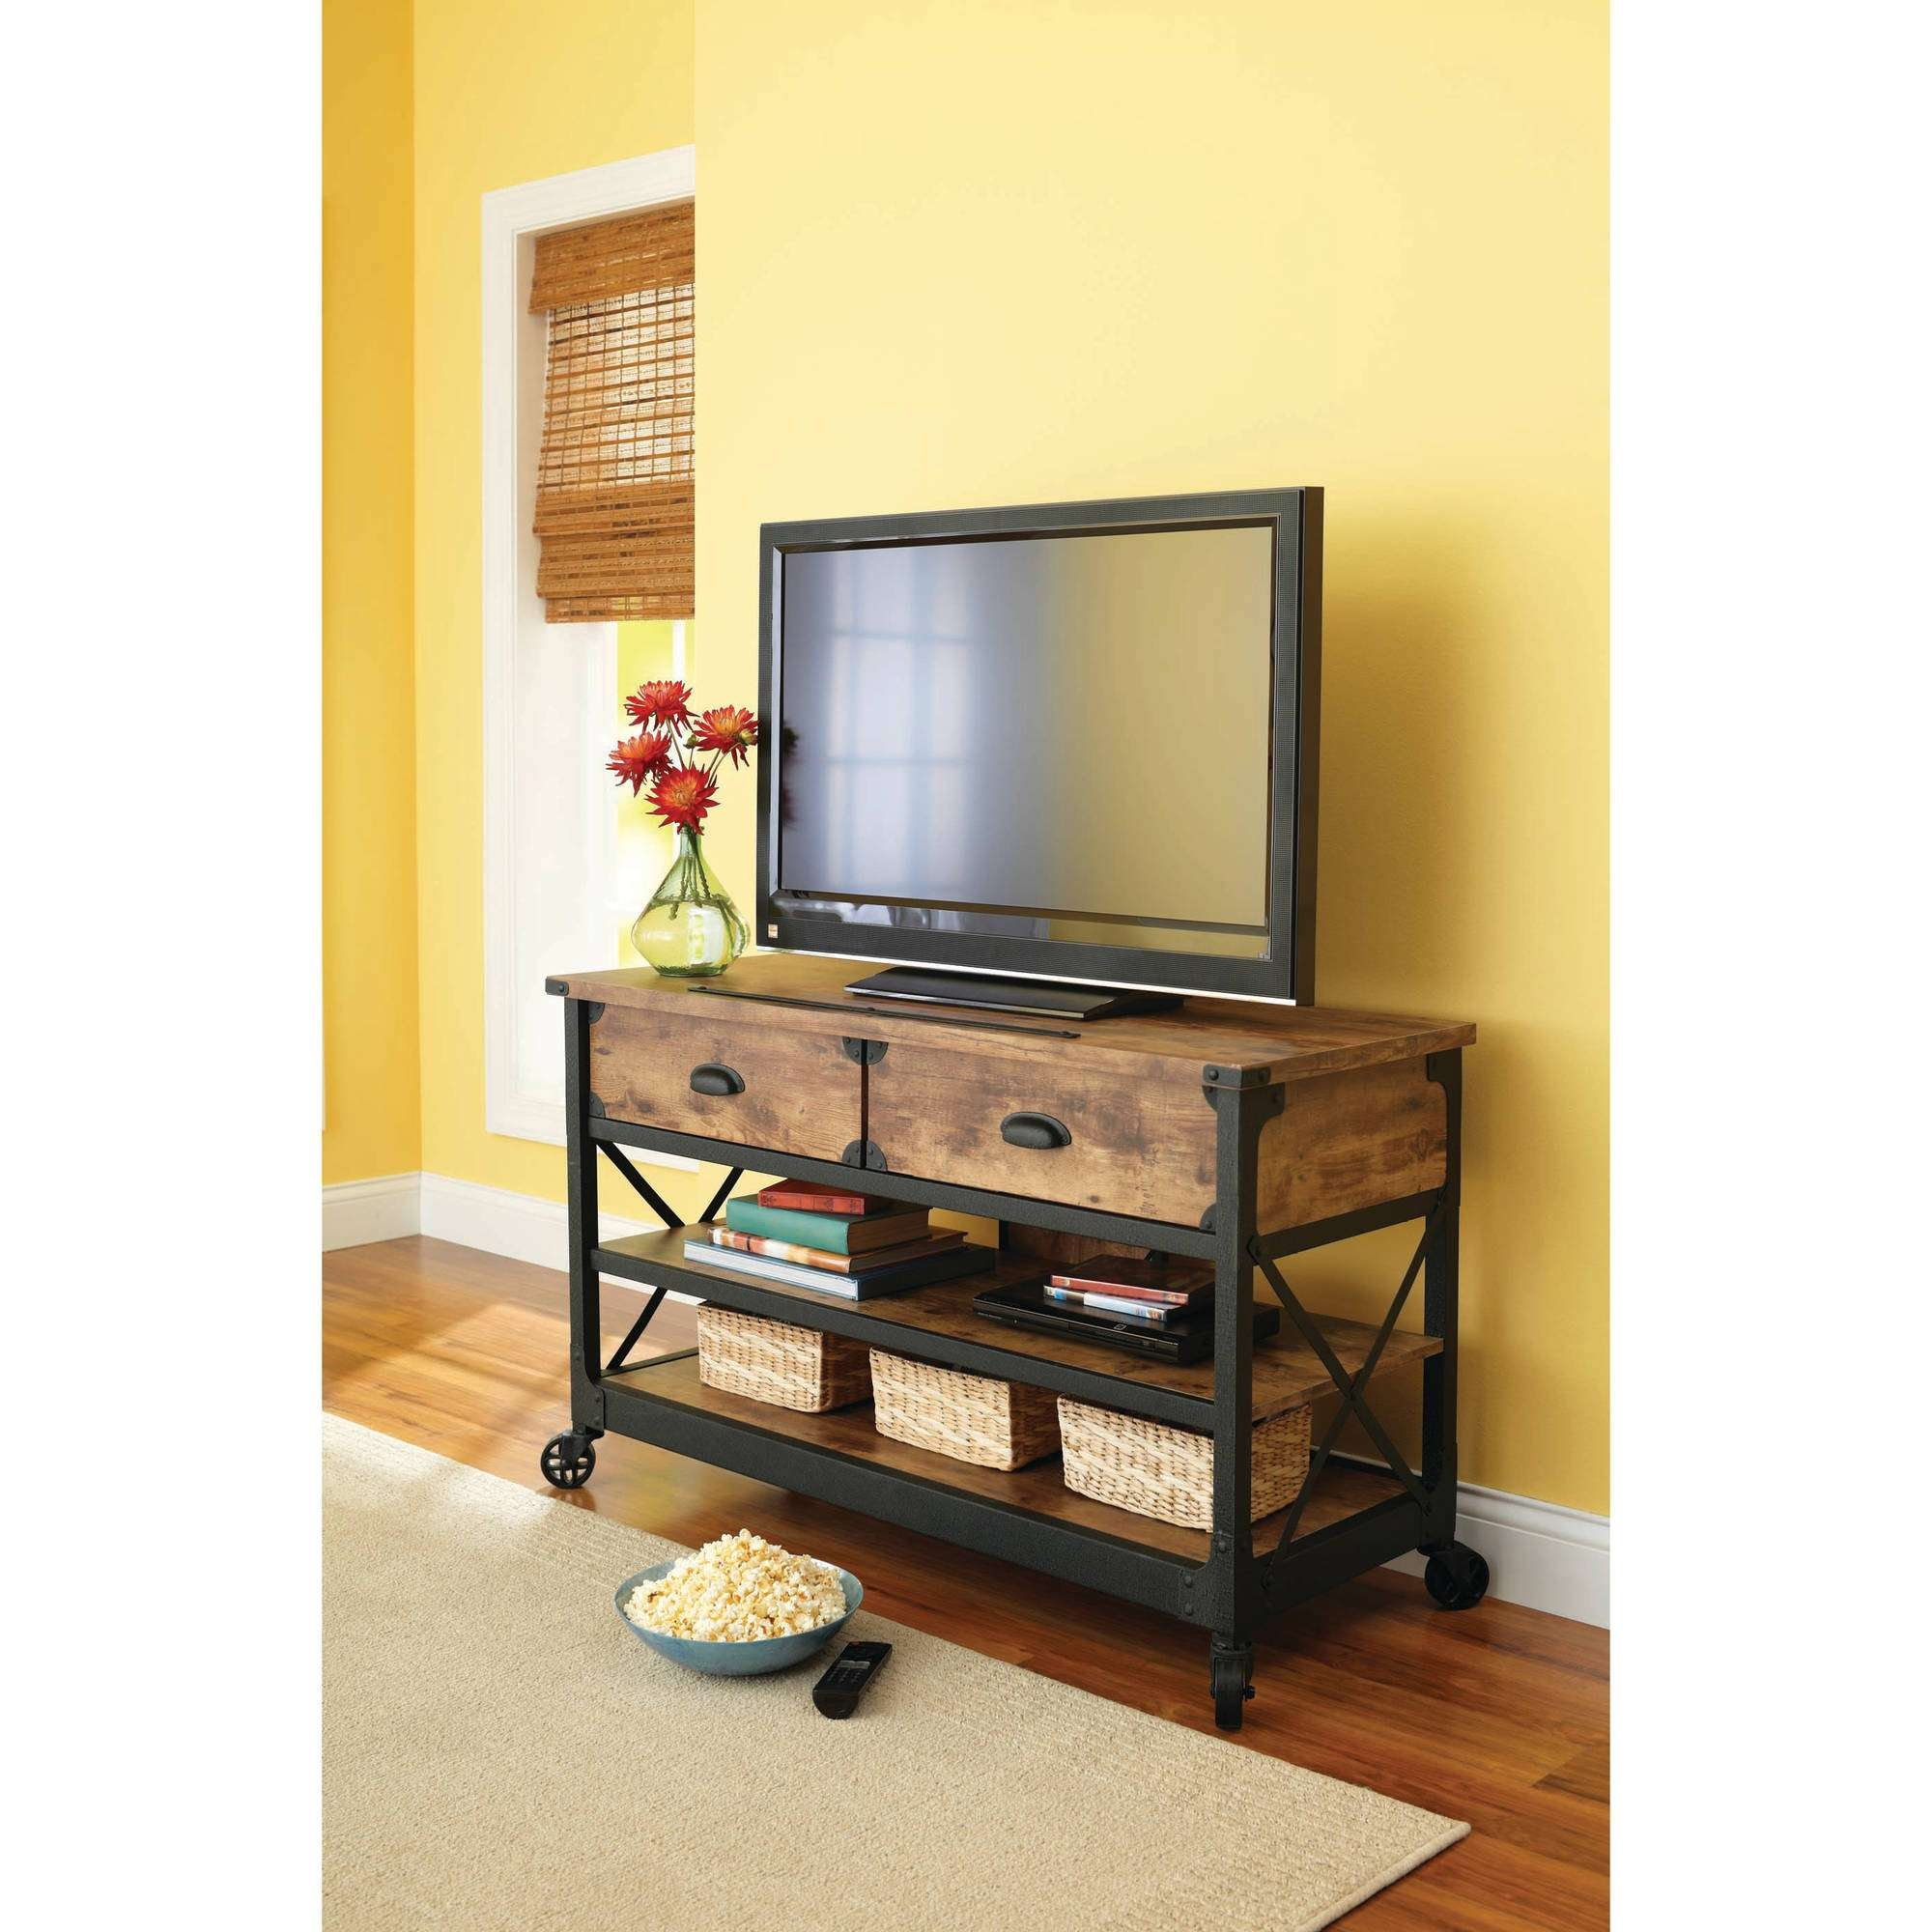 Better Homes And Gardens Rustic Country Antiqued Black/pine Panel Intended For Rustic Pine Tv Cabinets (View 14 of 20)